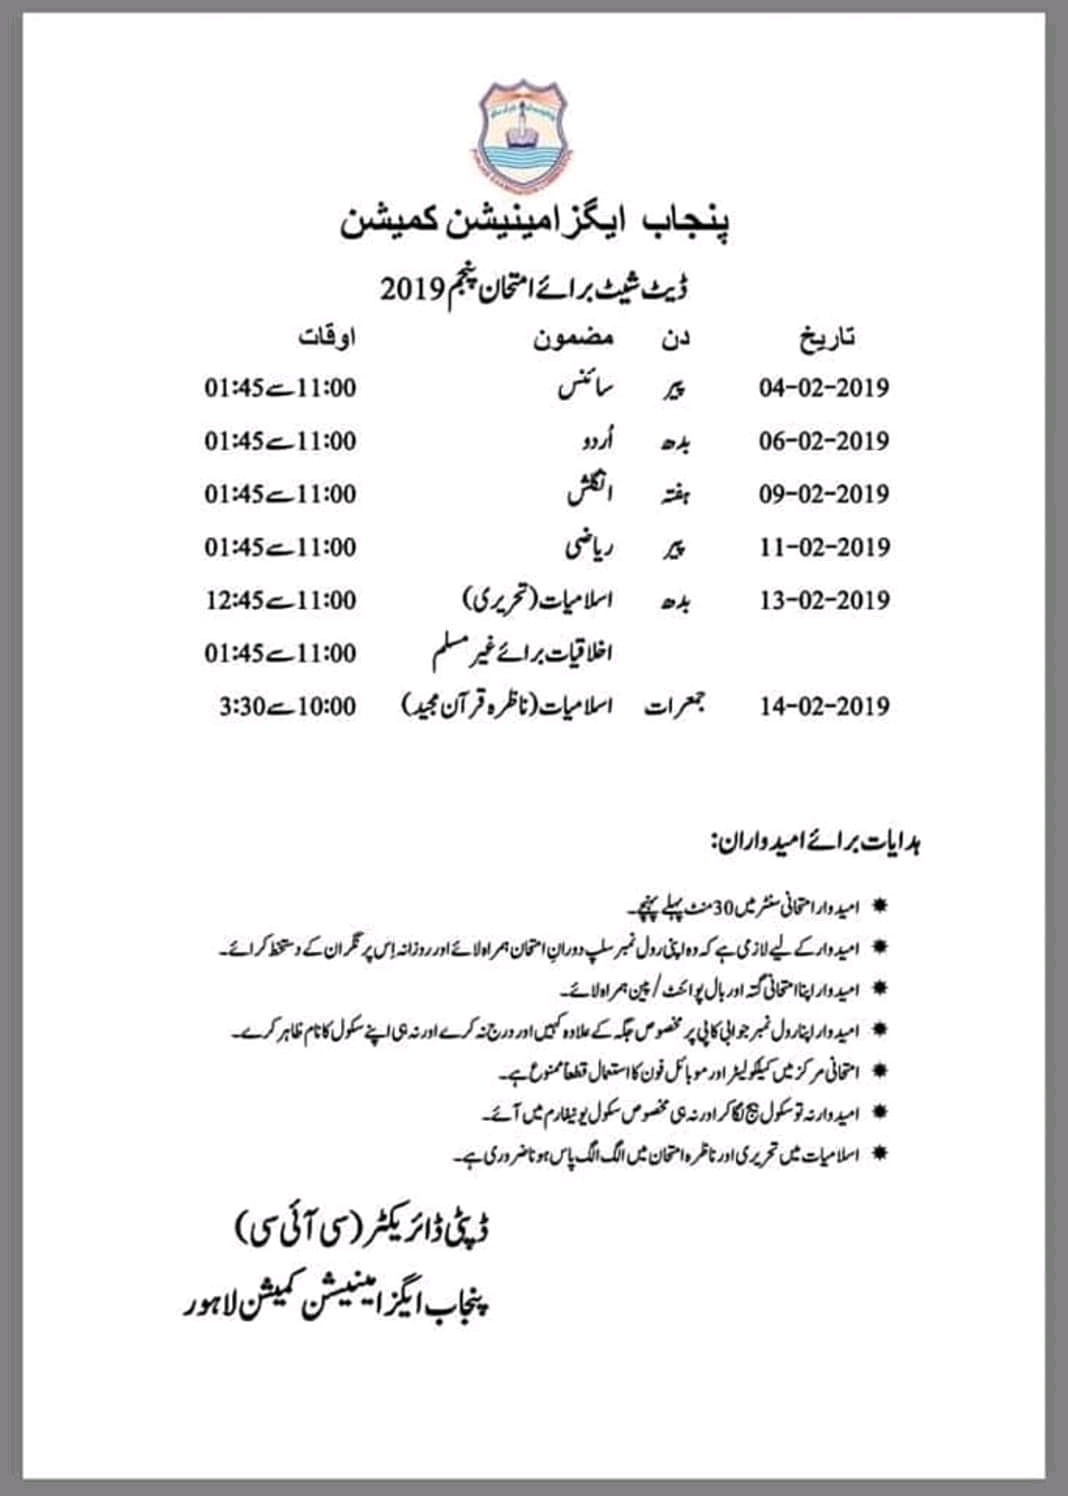 examination dates 2019 - psychologyarticles info